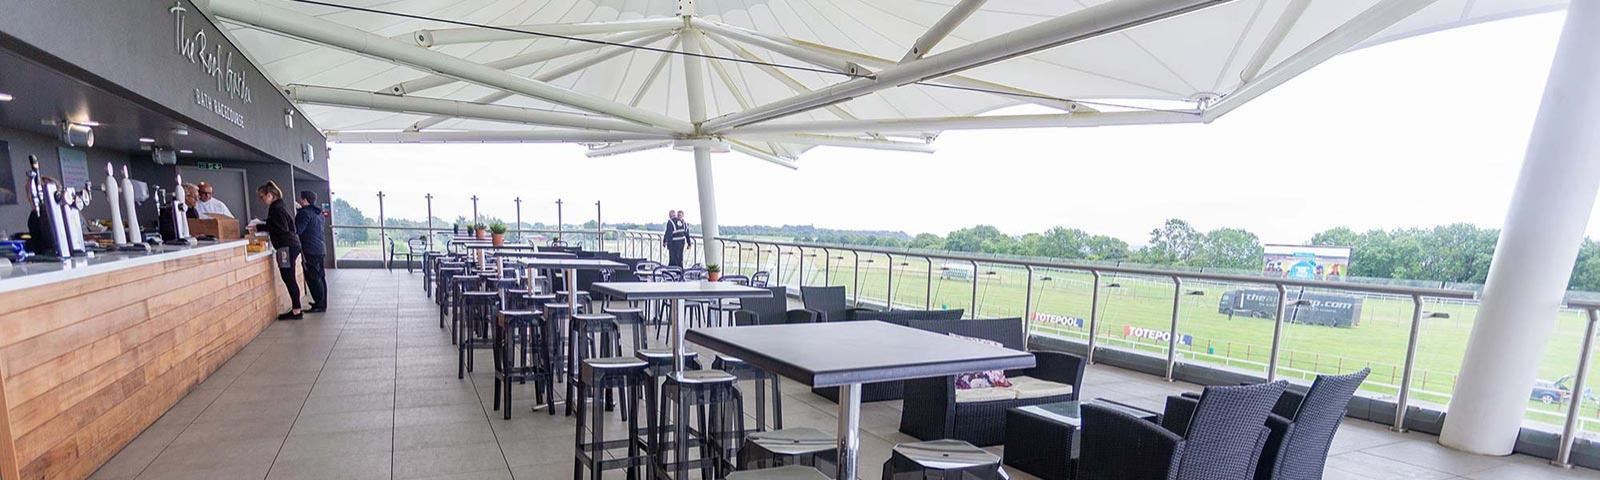 View of the Roof Garden bar at Bath Racecourse, with rows of tables set up alongside the bar.